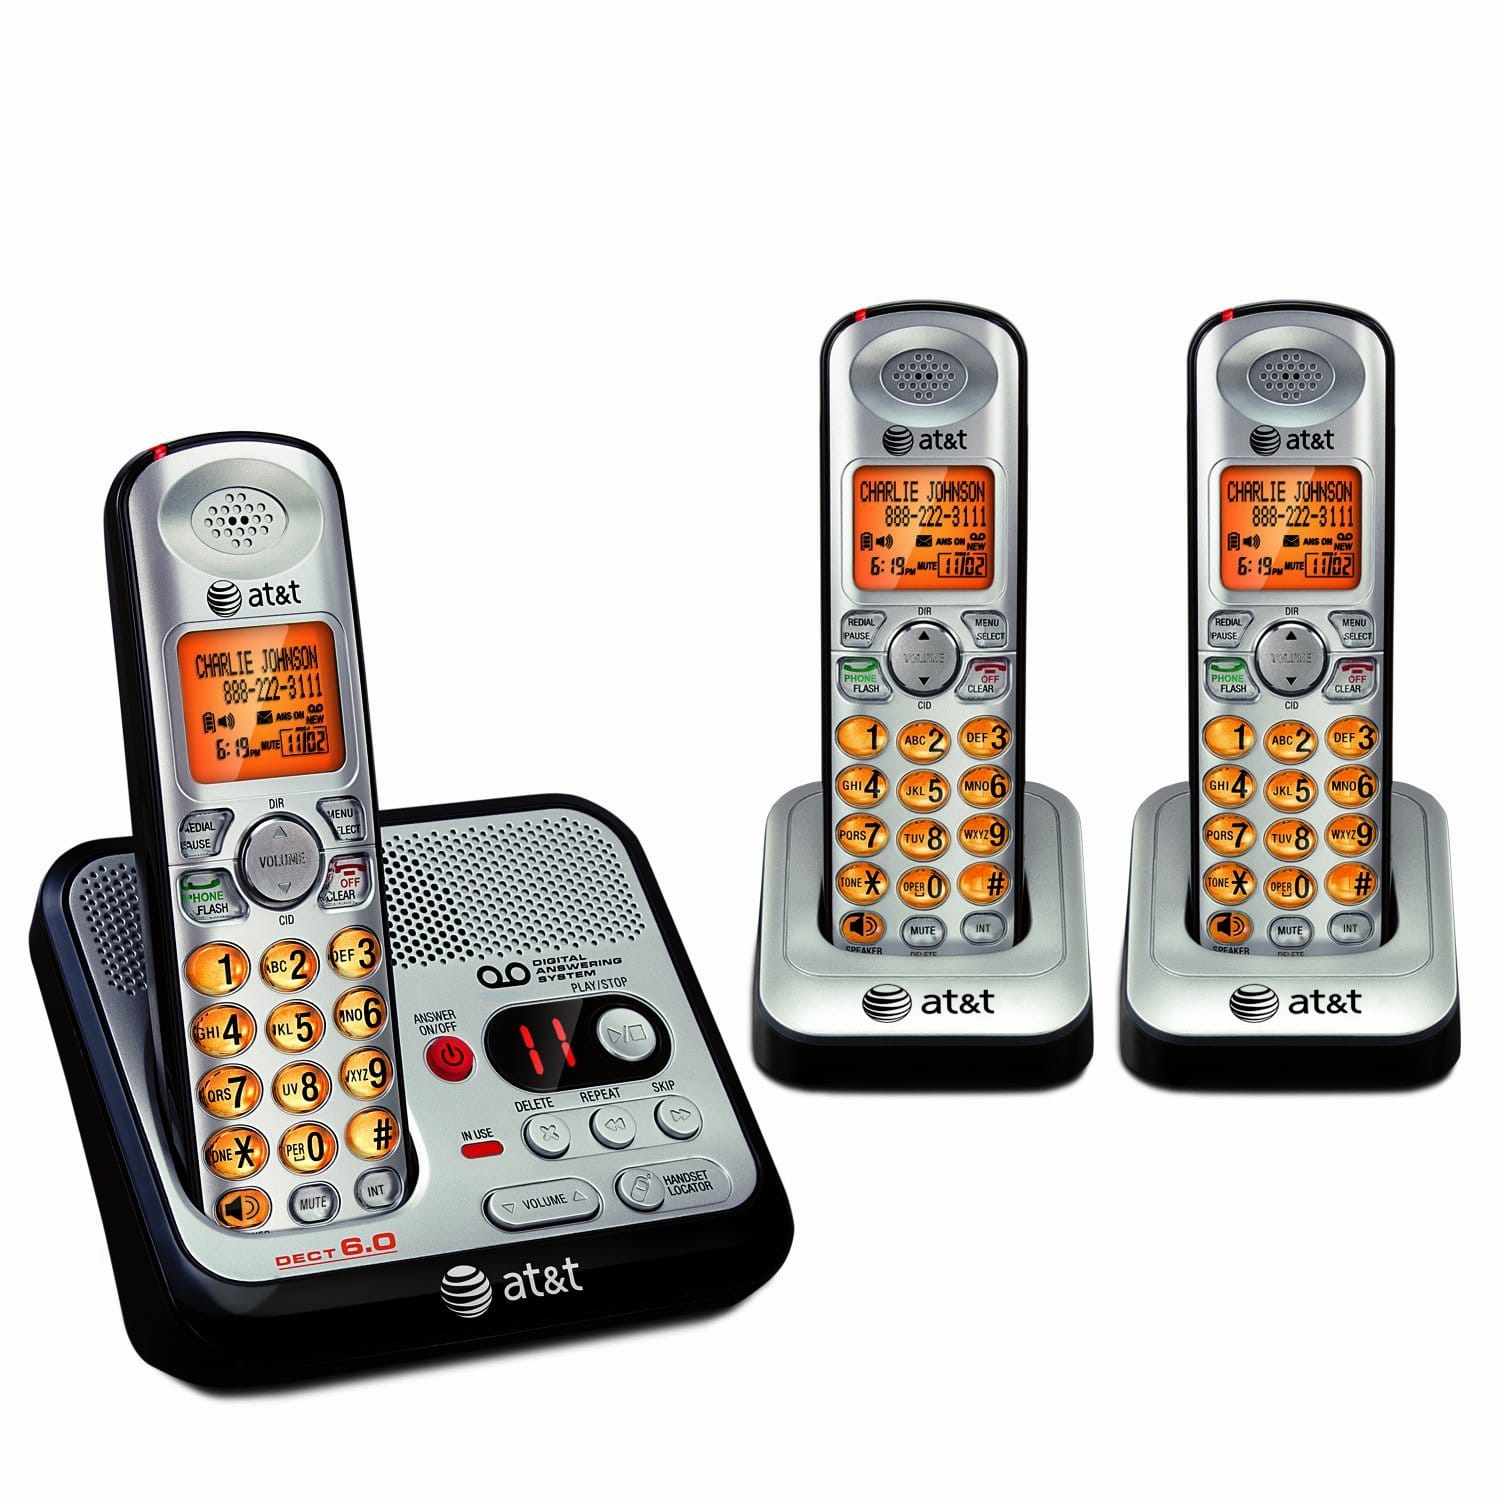 Top 10 Best Cordless Phones In 2020 Reviews